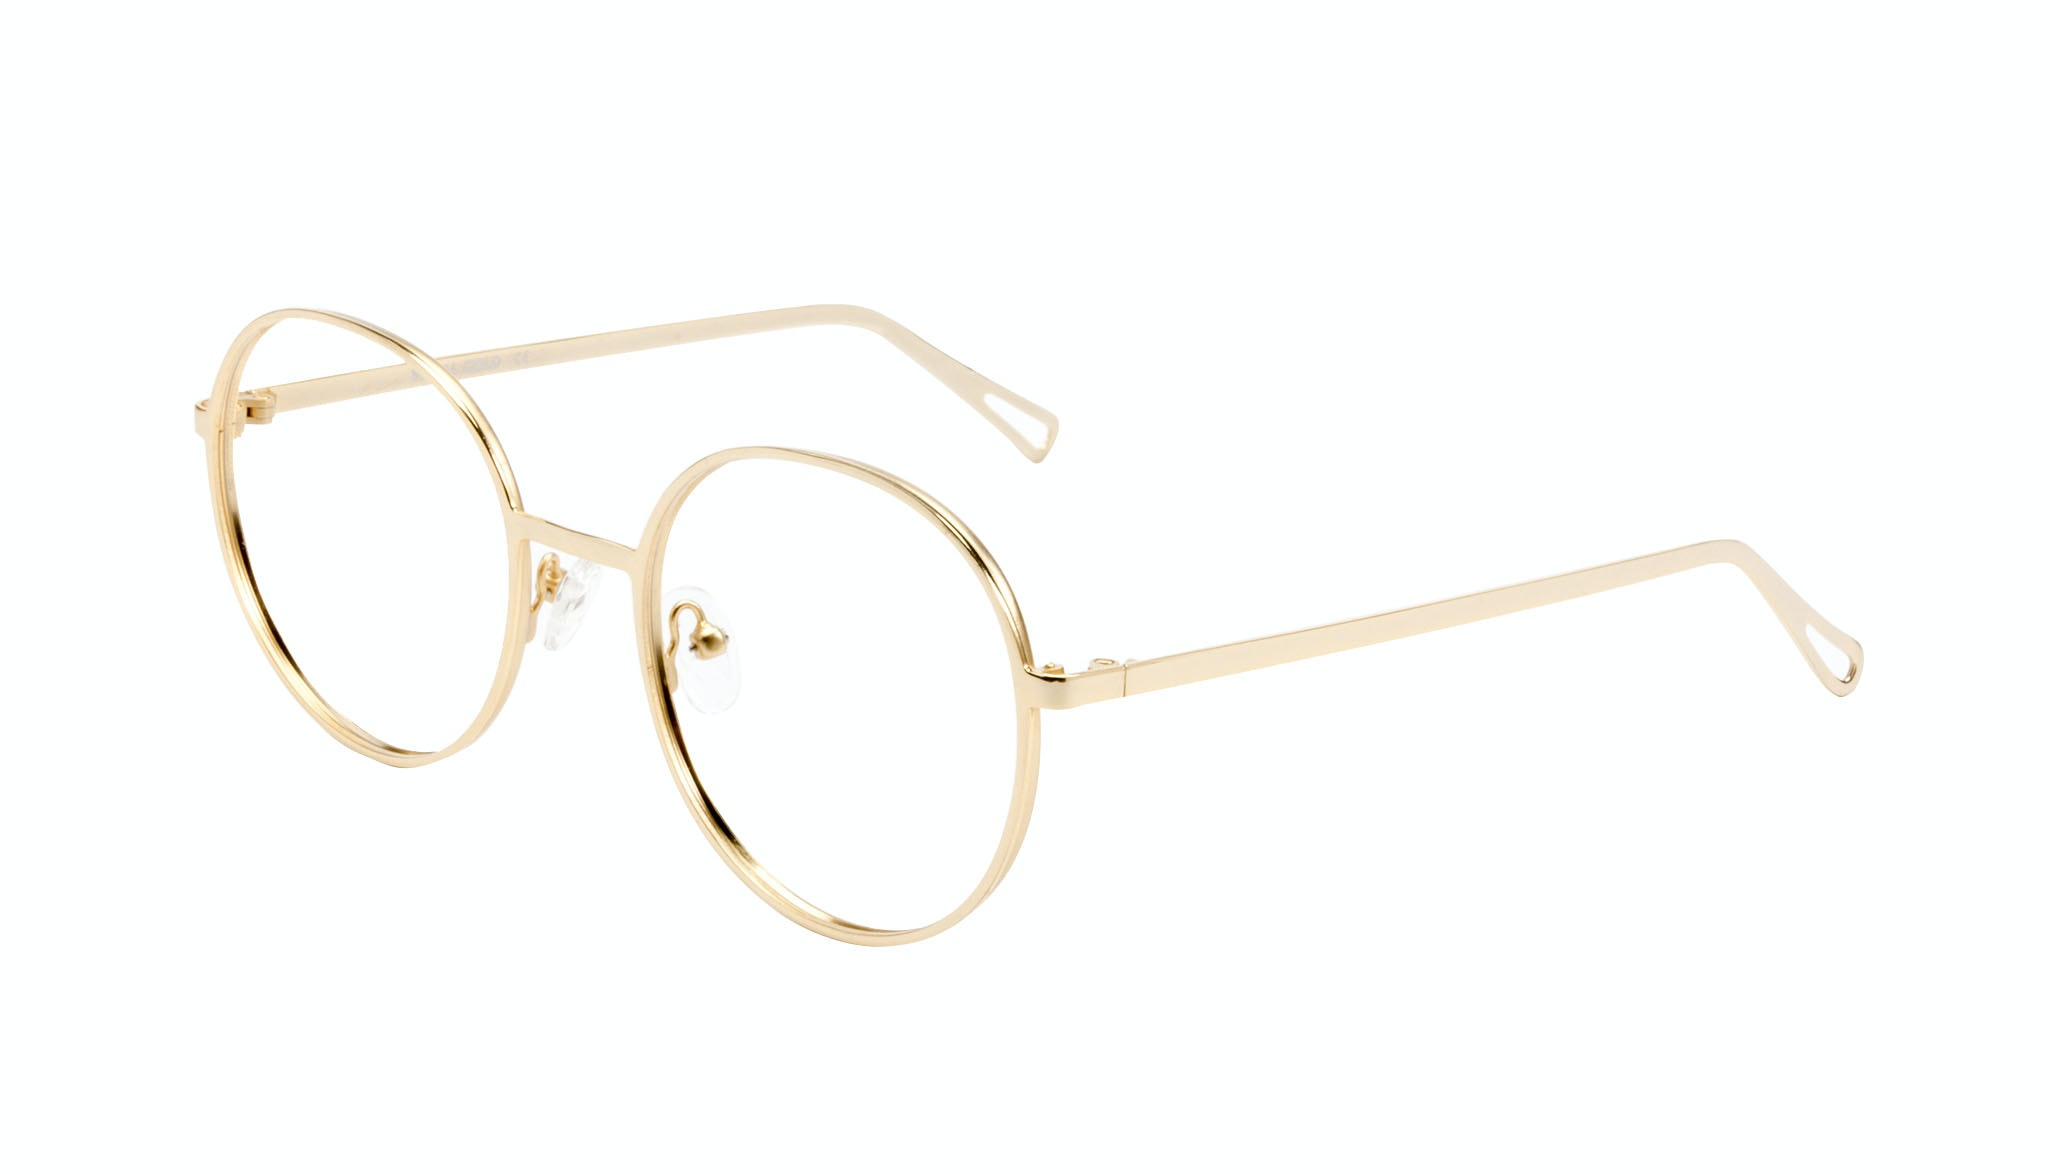 Affordable Fashion Glasses Round Eyeglasses Men Women Varna Gold Tilt